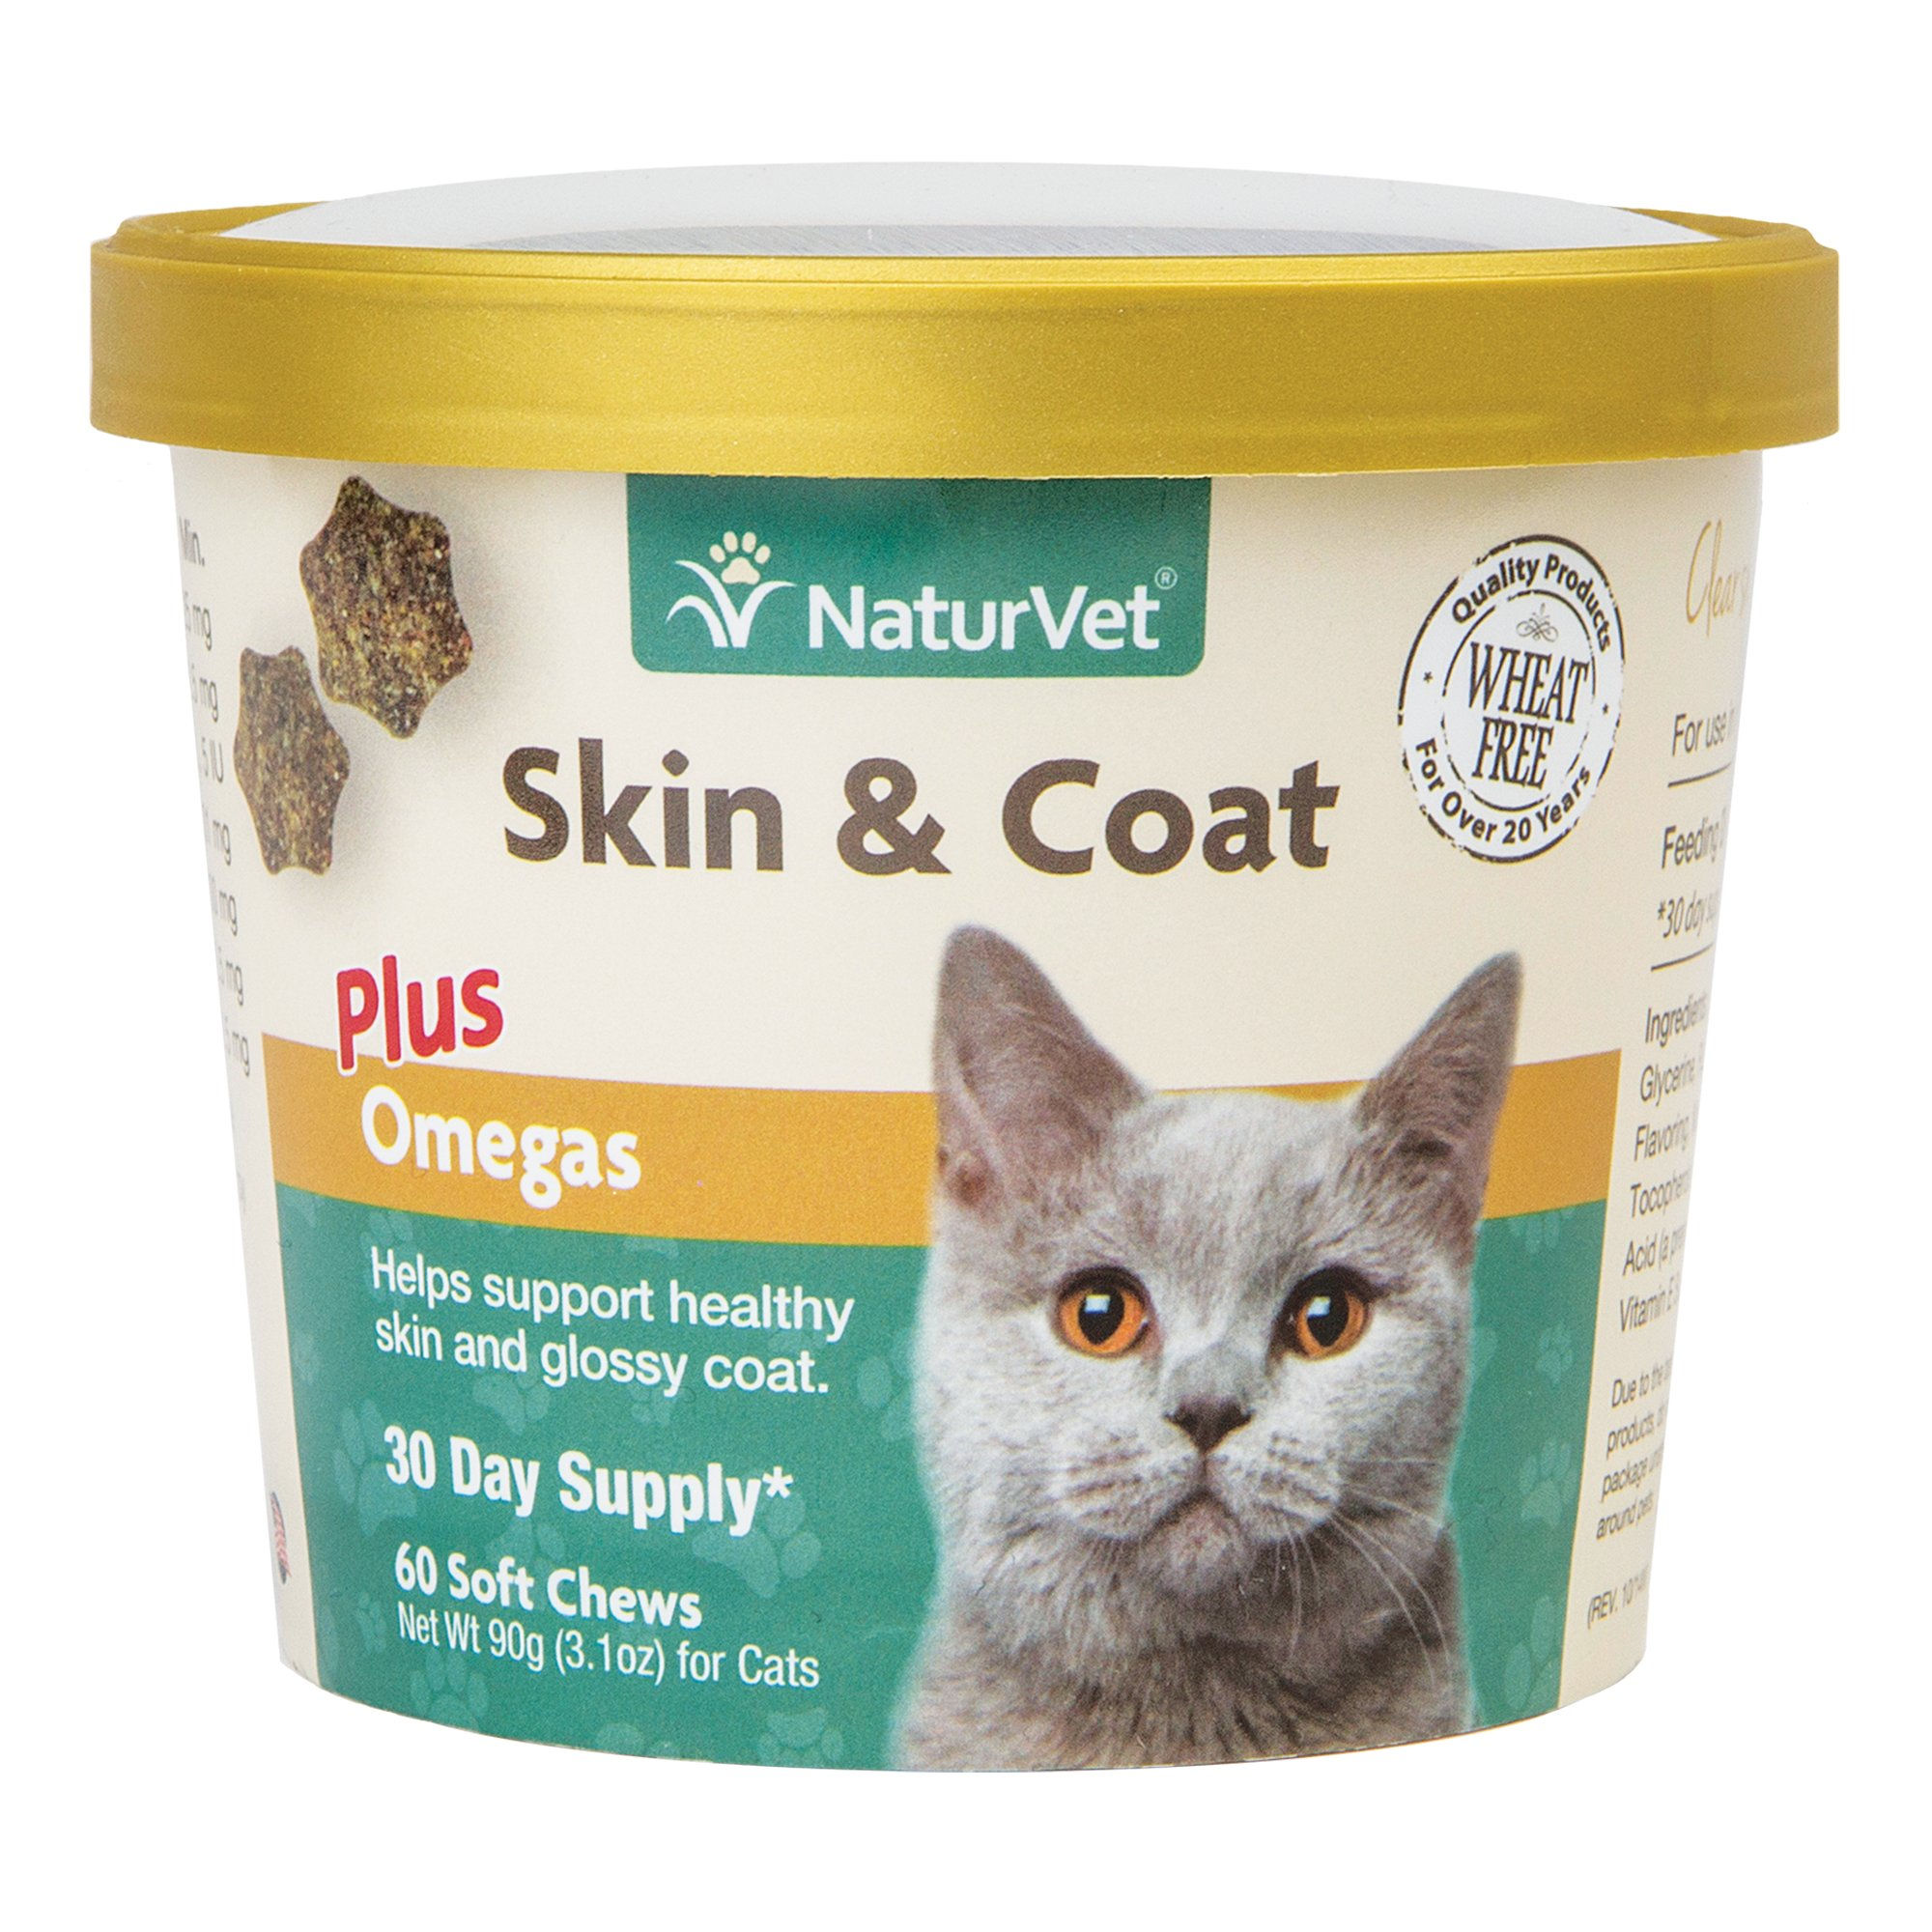 NaturVet Skin & Coat Cat Supplement